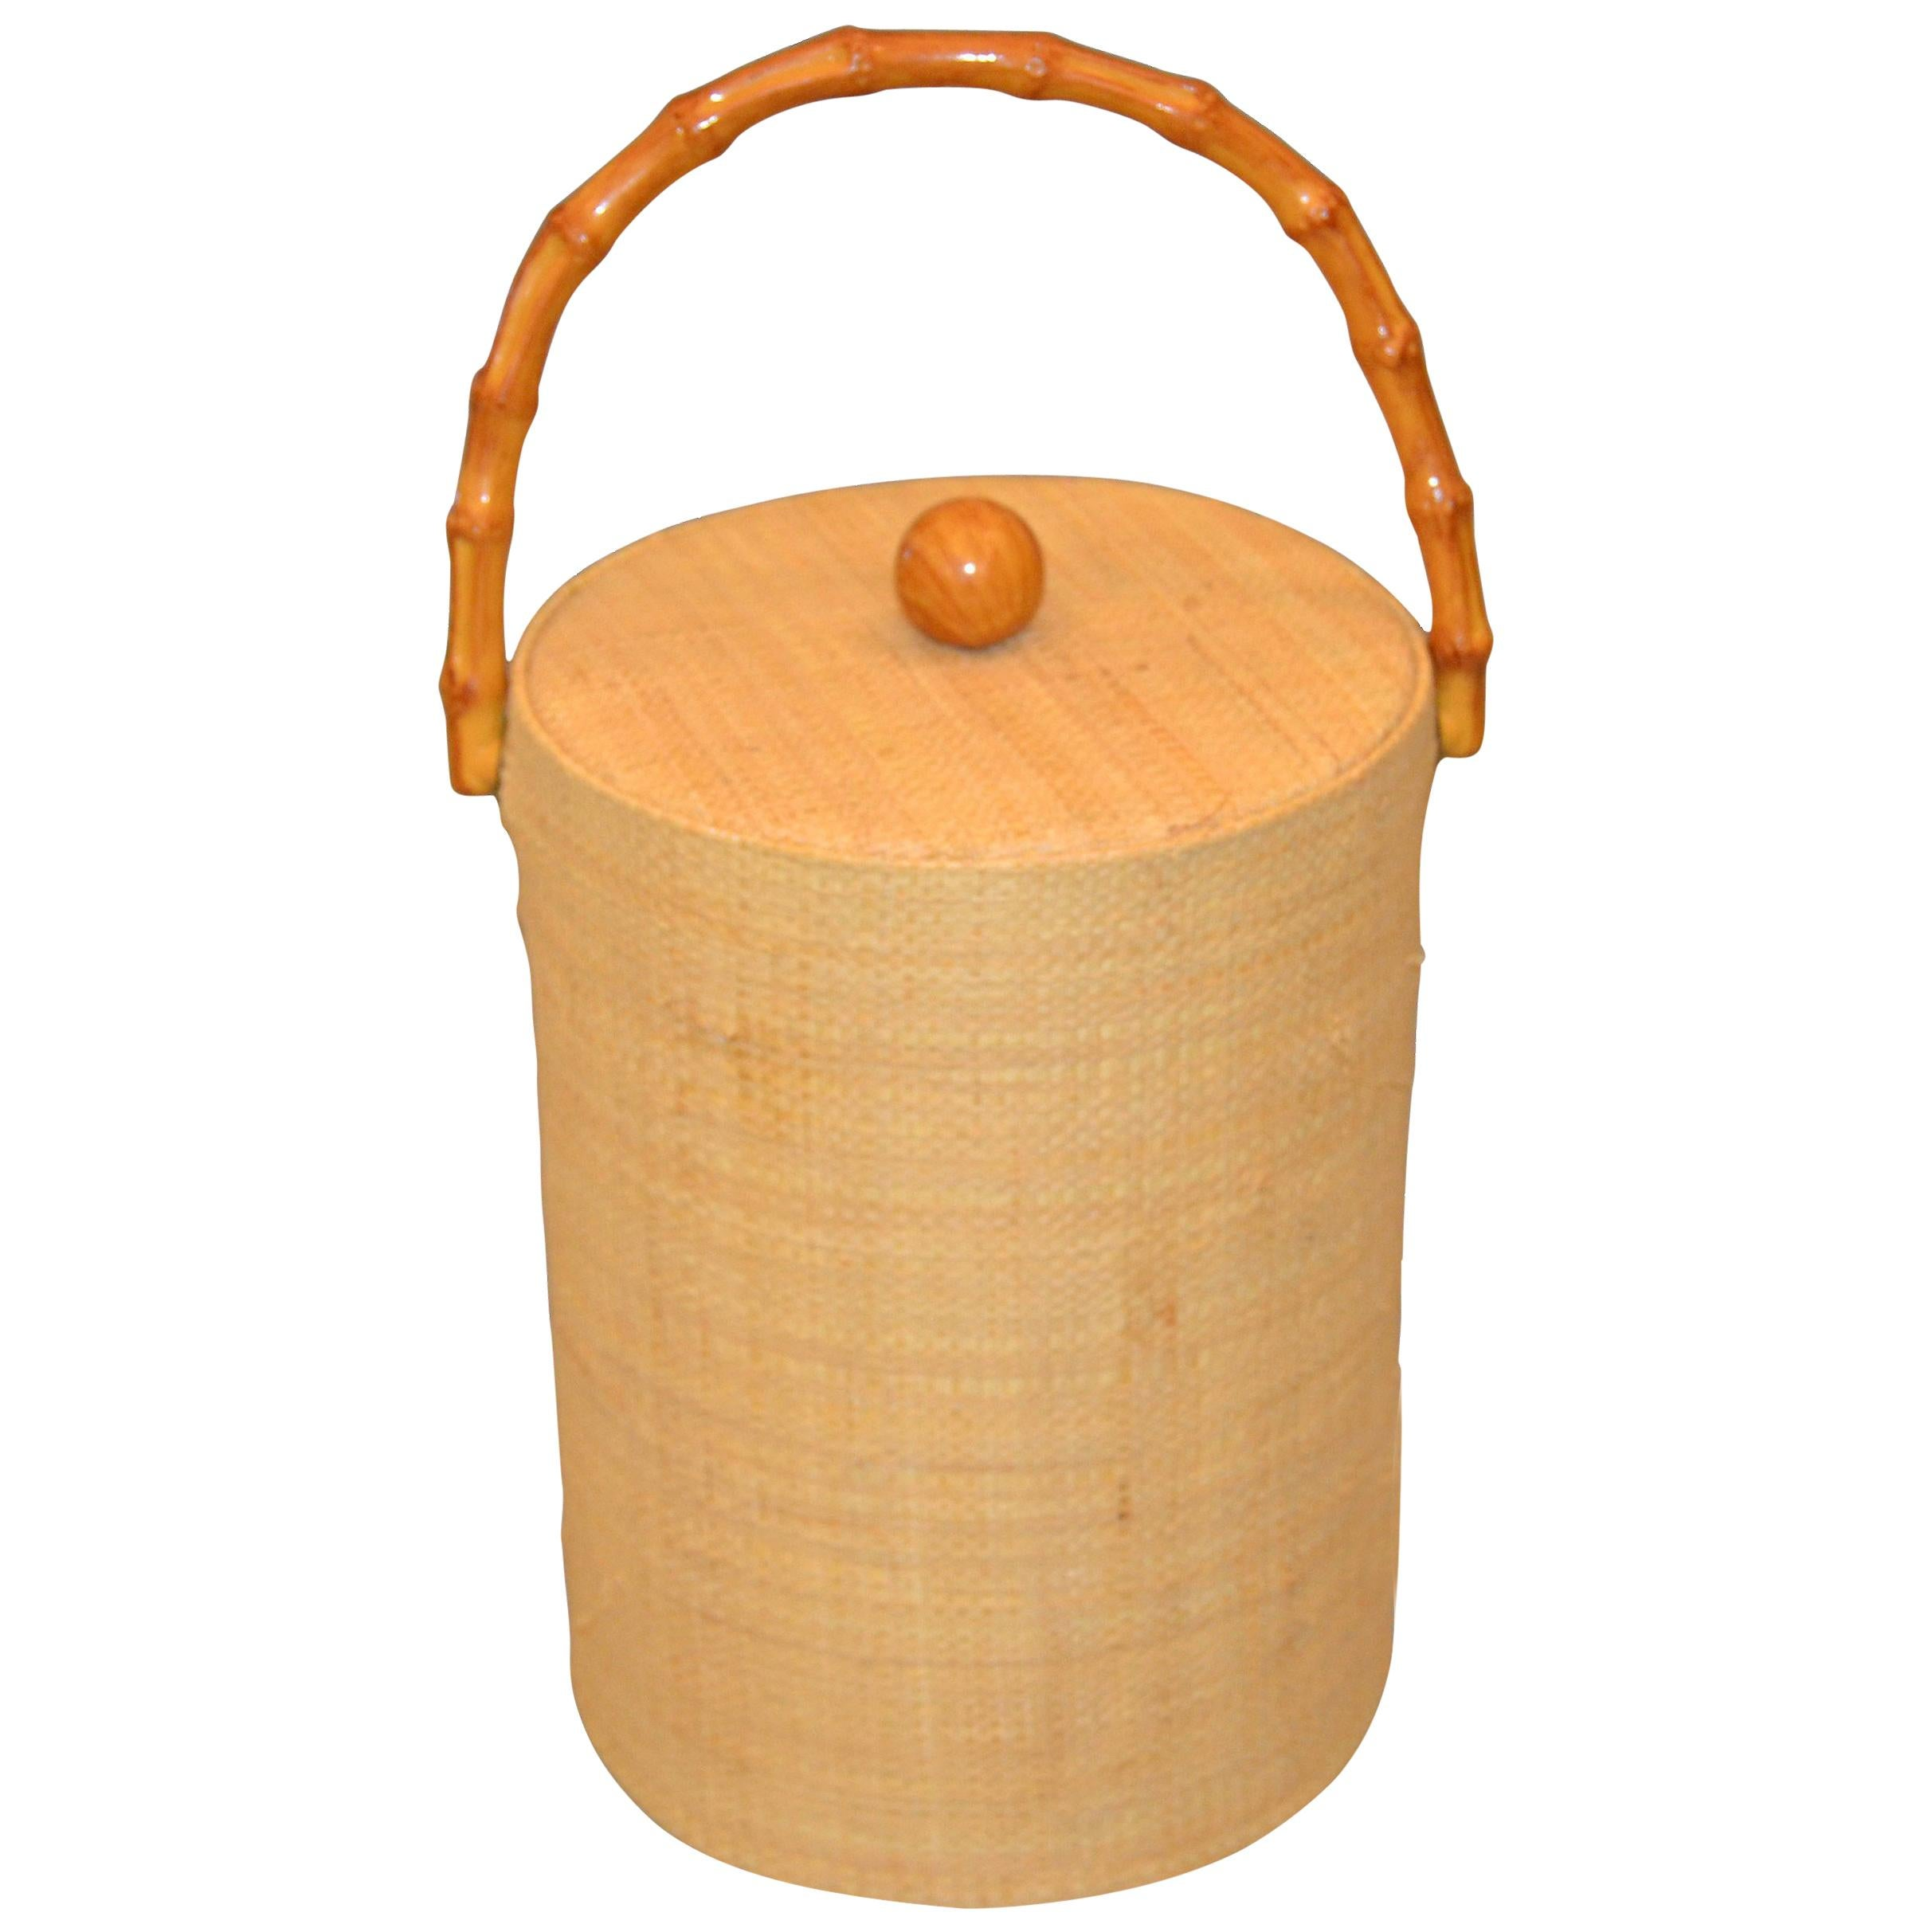 Mid-Century Modern Handwoven Cane & Bamboo Insulated Ice Bucket with Lid